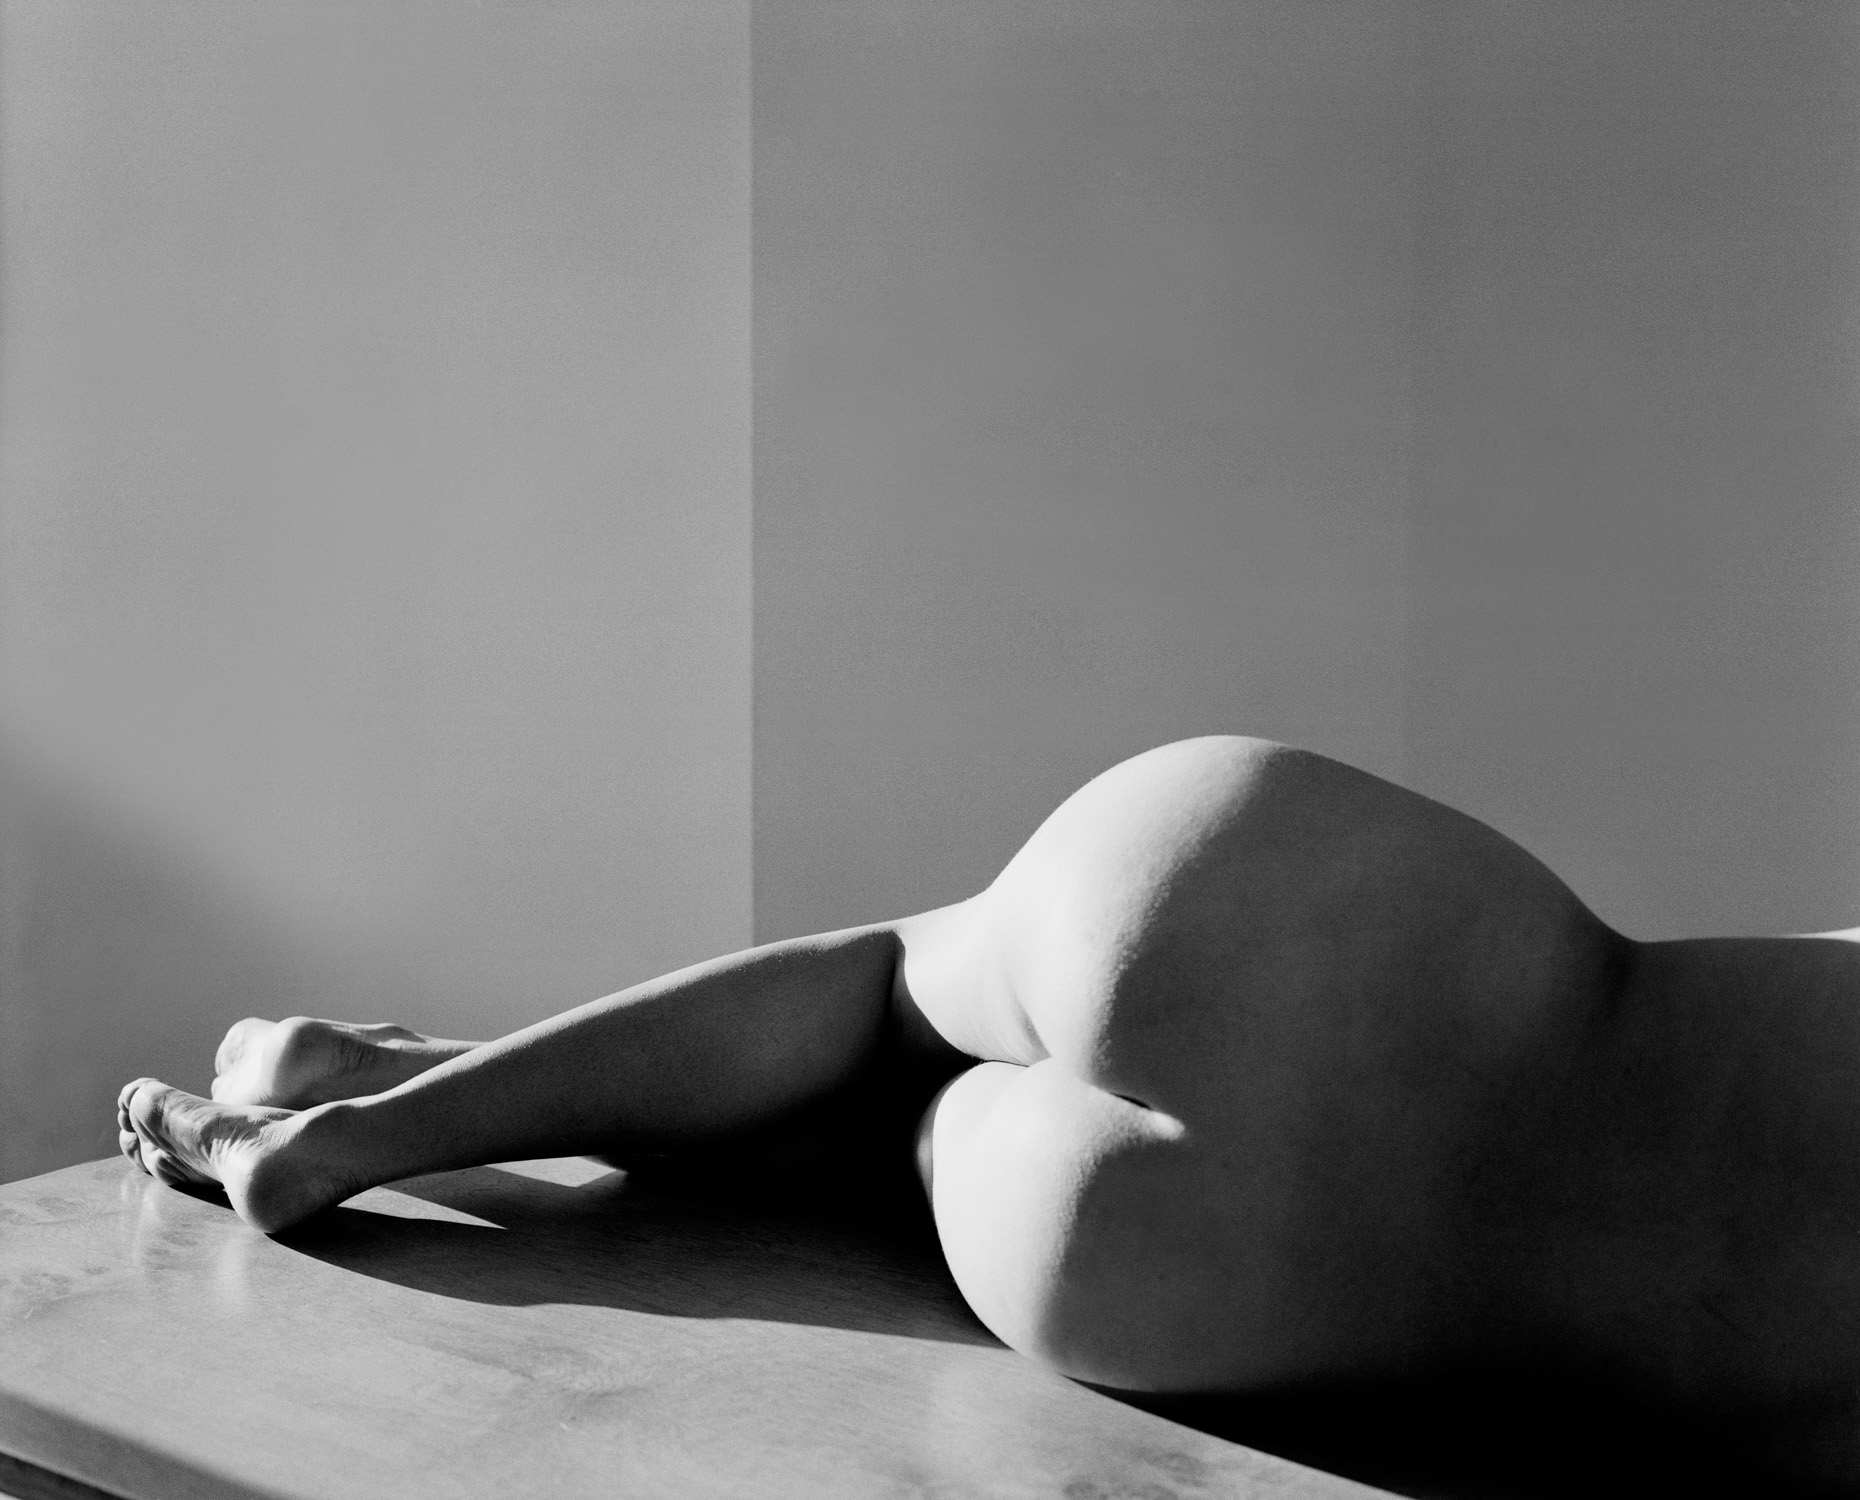 Axel Bernstorff, Collectable limited edition prints. Nude. Naked form. Sensuality. Beauty.